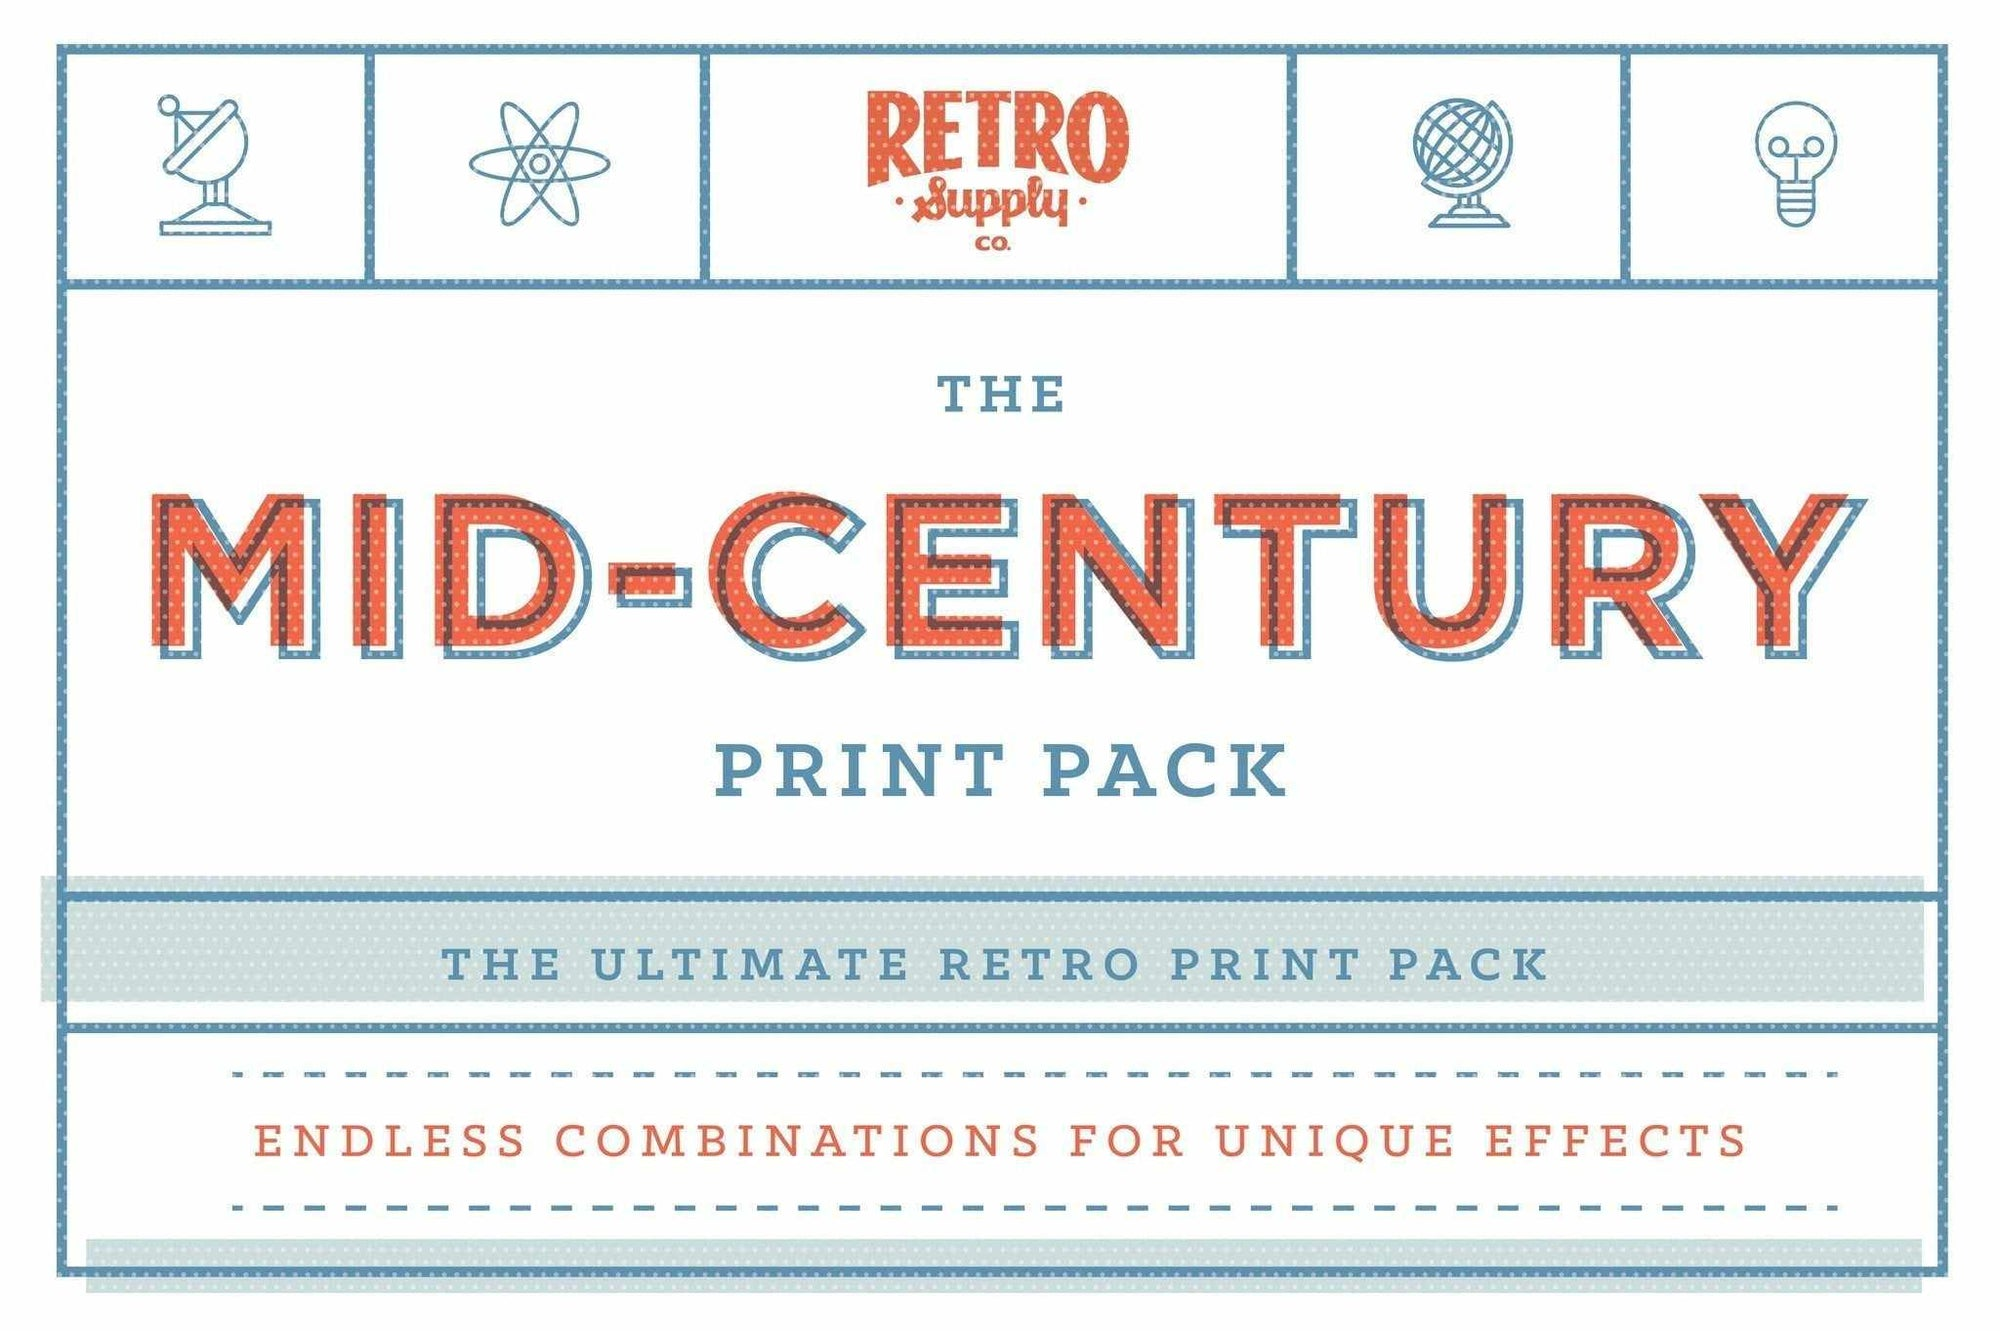 The Mid Century Print Pack Mega Bundle Adobe Photoshop RetroSupply Co